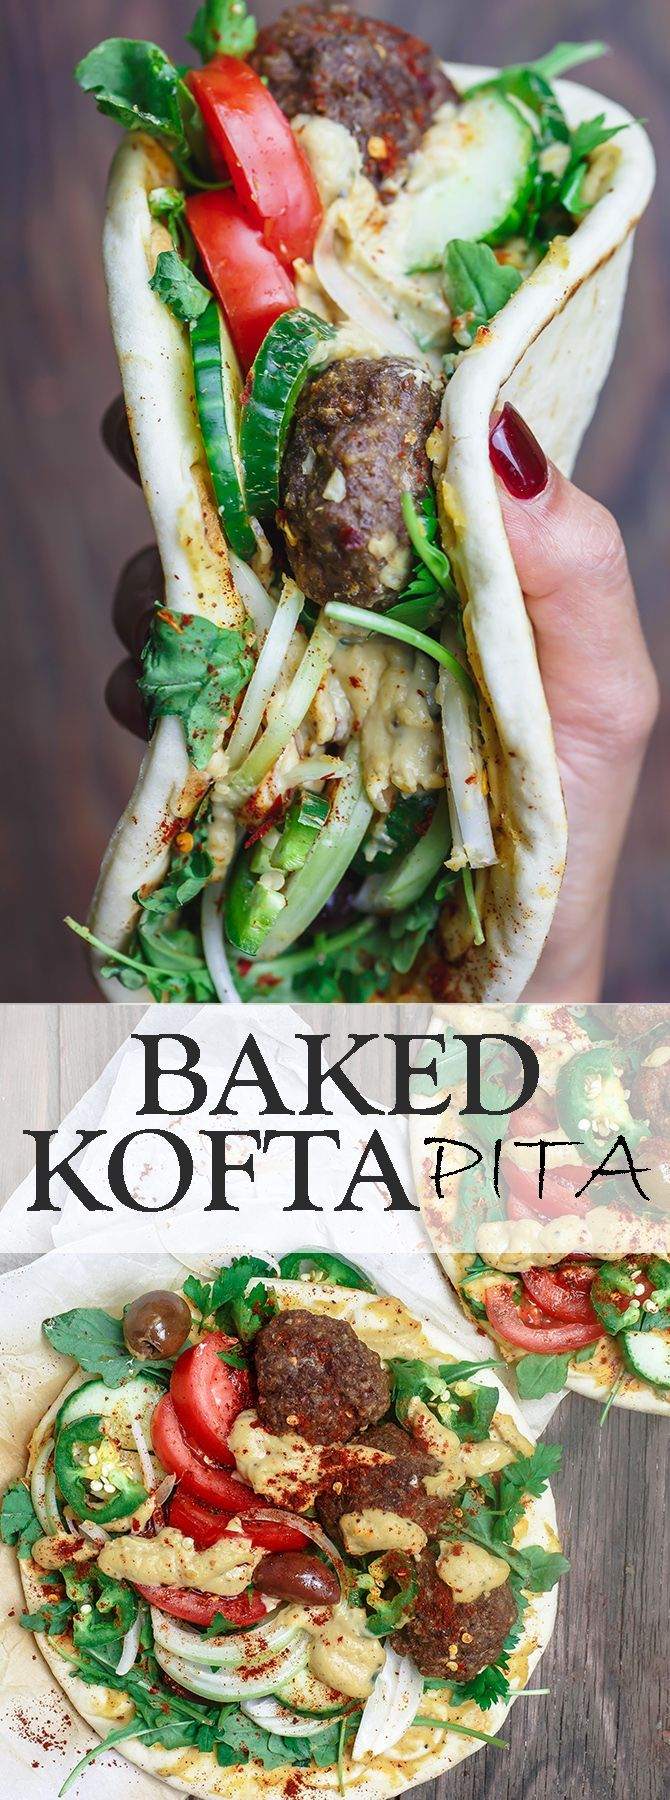 Baked Kofta Pita Sandwich   The Mediterranean Dish. Baked ground lamb kofta patties, flavored with warm Mediterranean spices, served on Greek pita with fresh veggies and hummus spread. Make it for an easy dinner, or setup a make-your-own-sandwich bar for your next party! See it step-by-step on http://TheMediterraneanDish.com #SabraSpreads